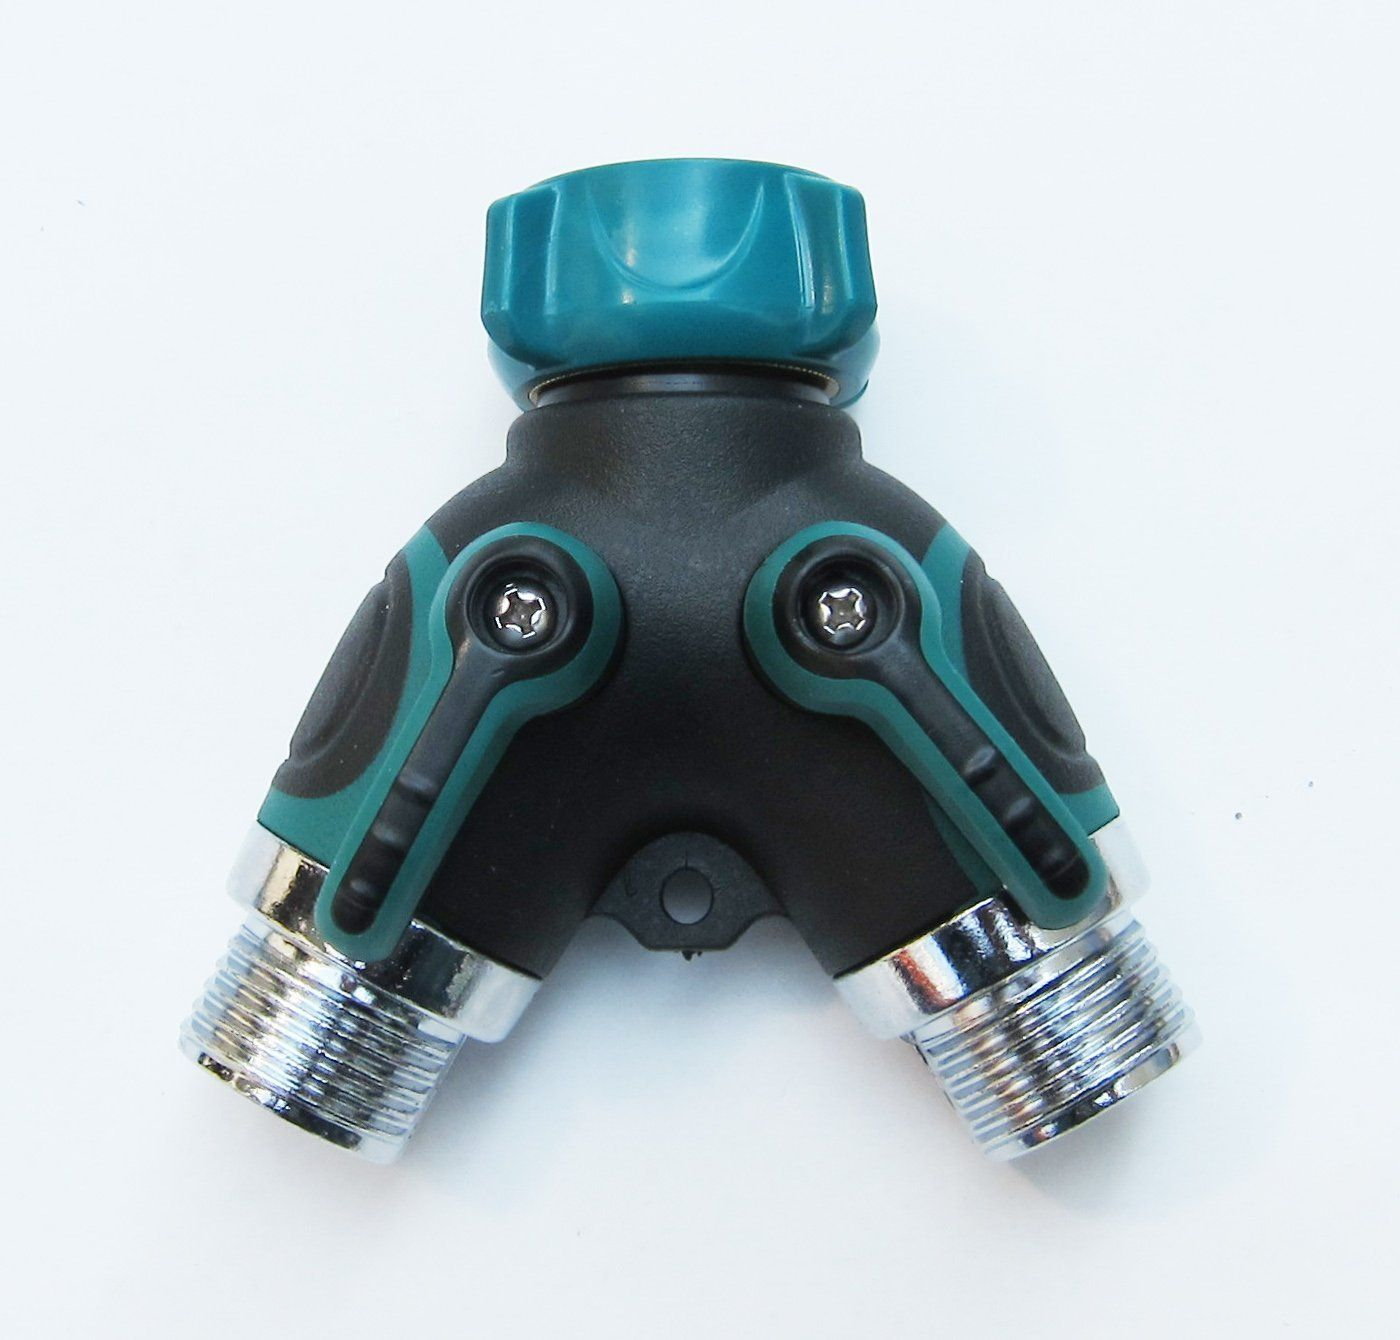 3Way Garden Hose Connector, 3Way Shut Off Valve, Quick